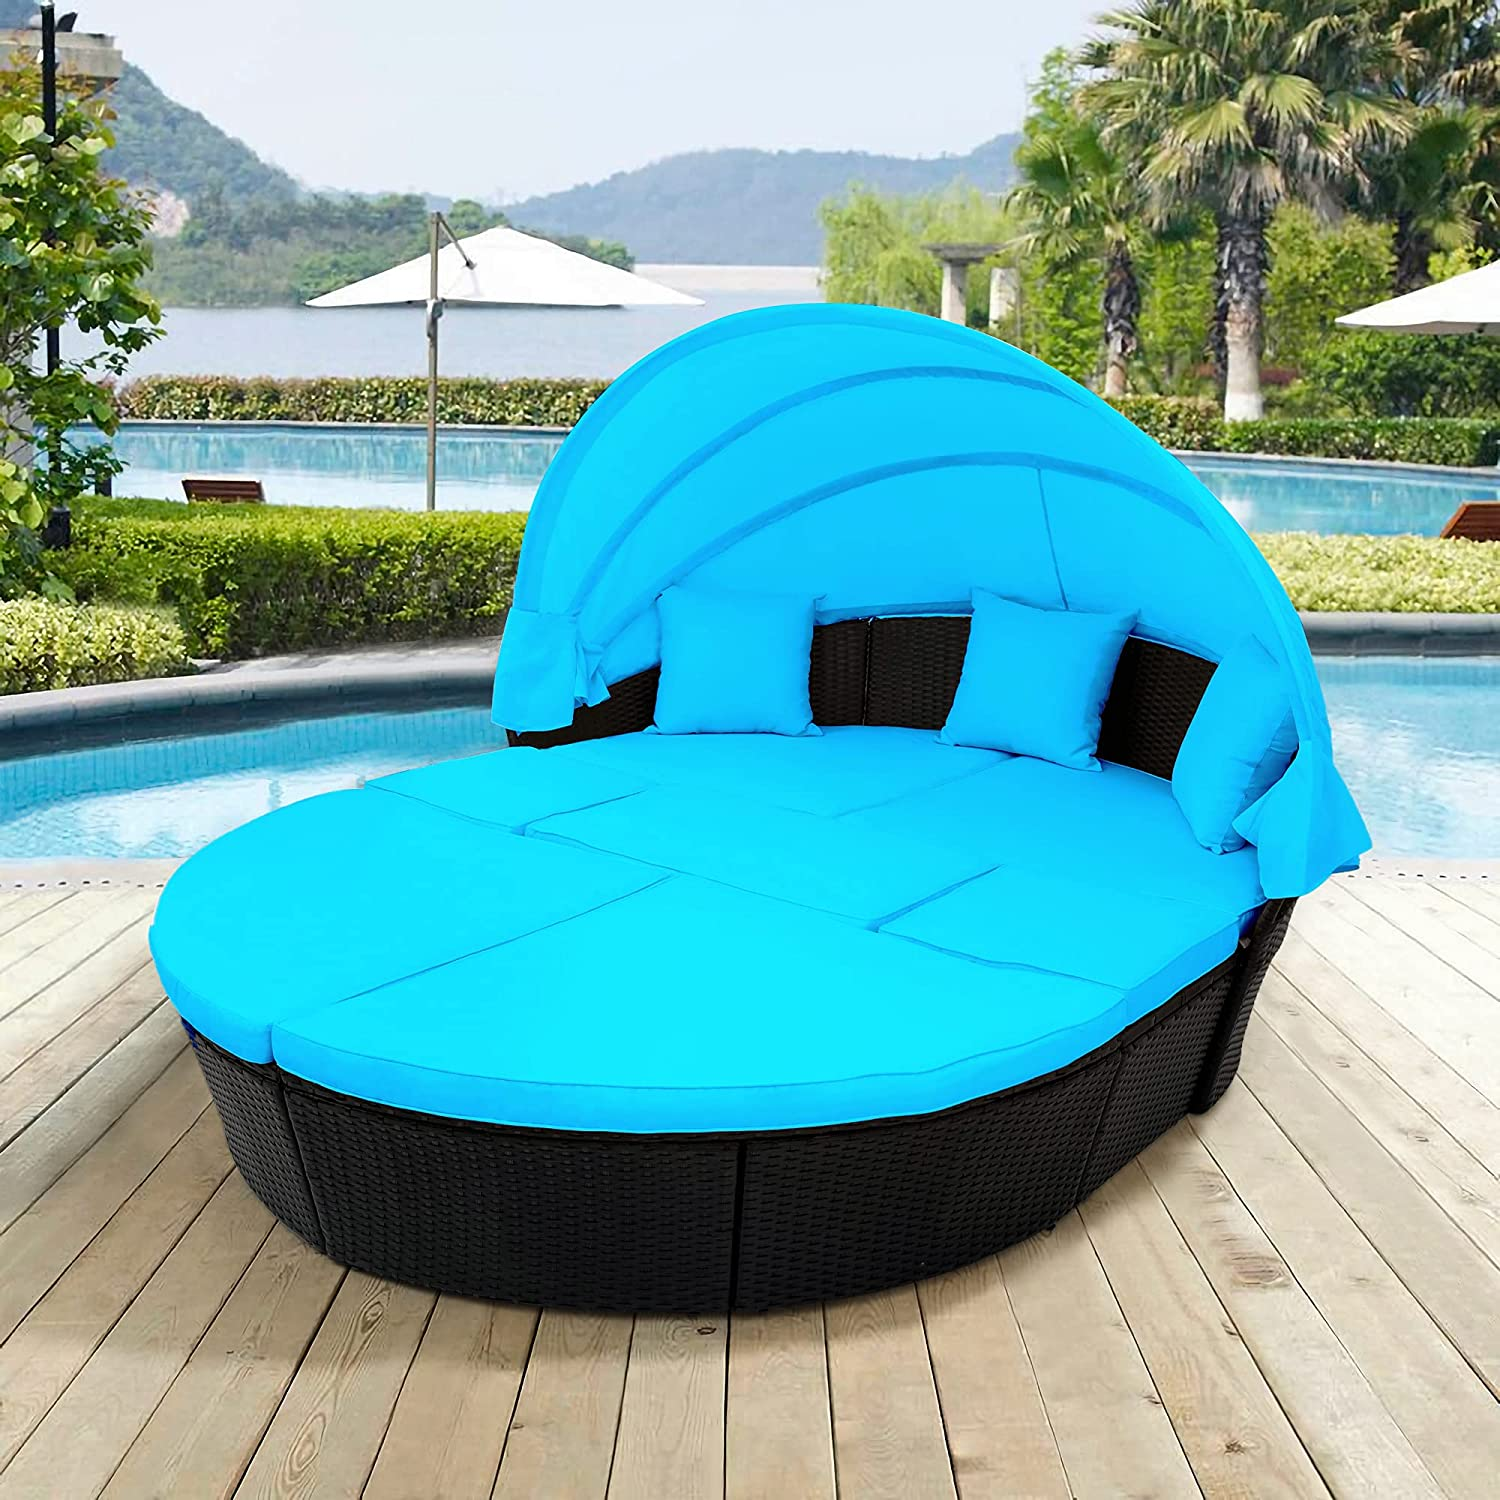 Merax All-Weather Outdoor Sectional Sofa Conversation Set Rattan Round Daybed Sunbed with Retractable Canopy and Removable Cushions (Blue)